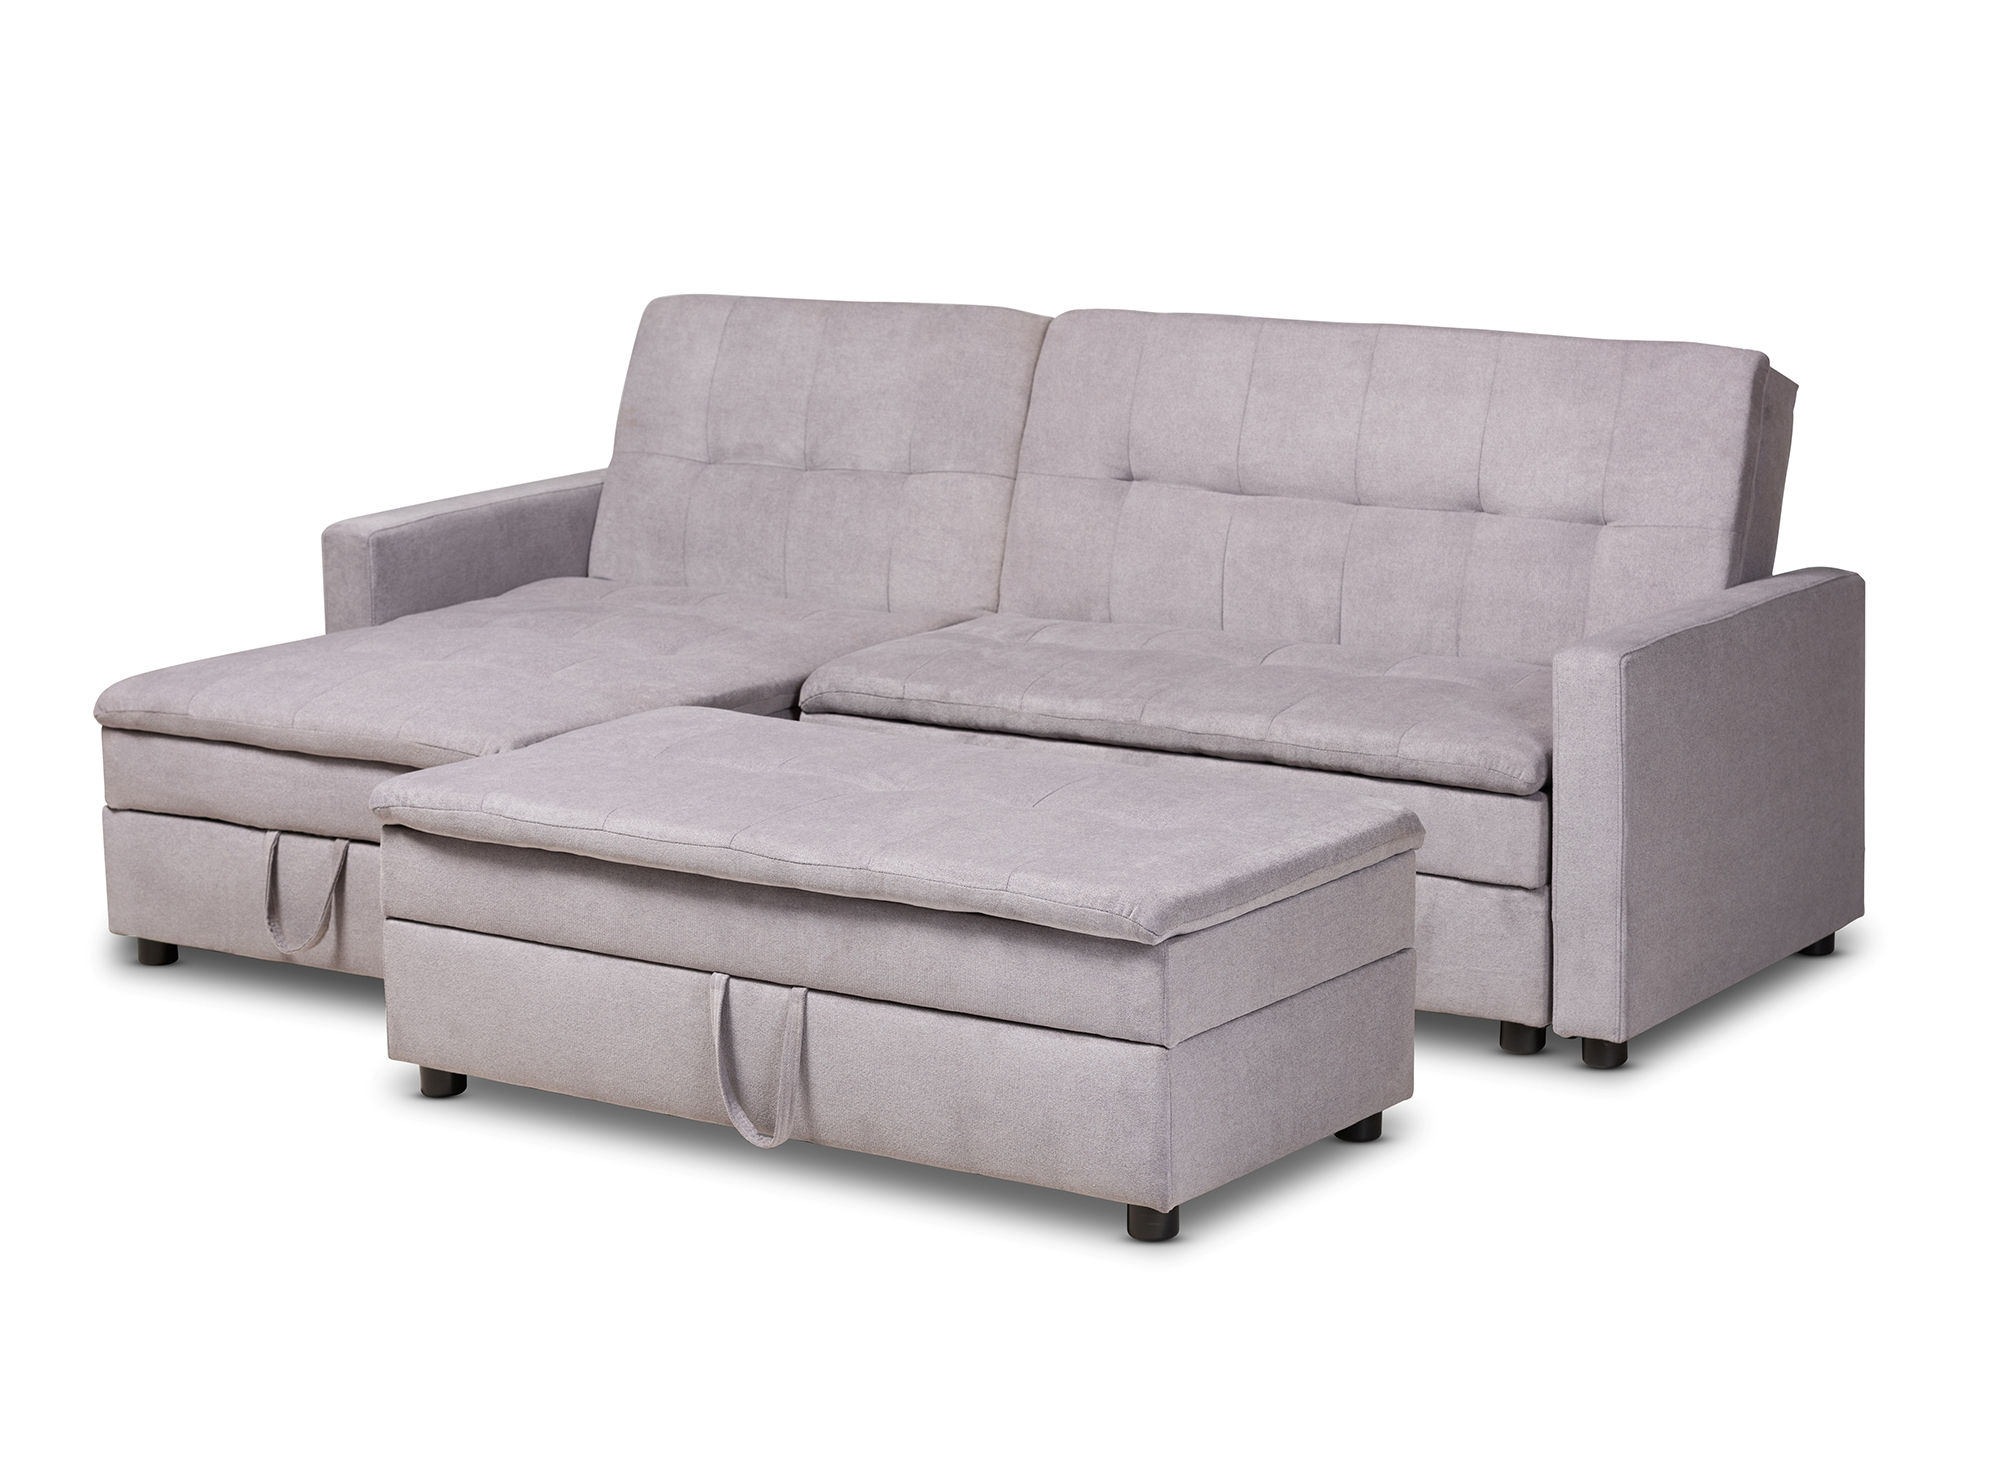 Baxton Studio Noa Light Grey Fabric Left Facing Storage Sectional Sleeper  Sofa with Ottoman